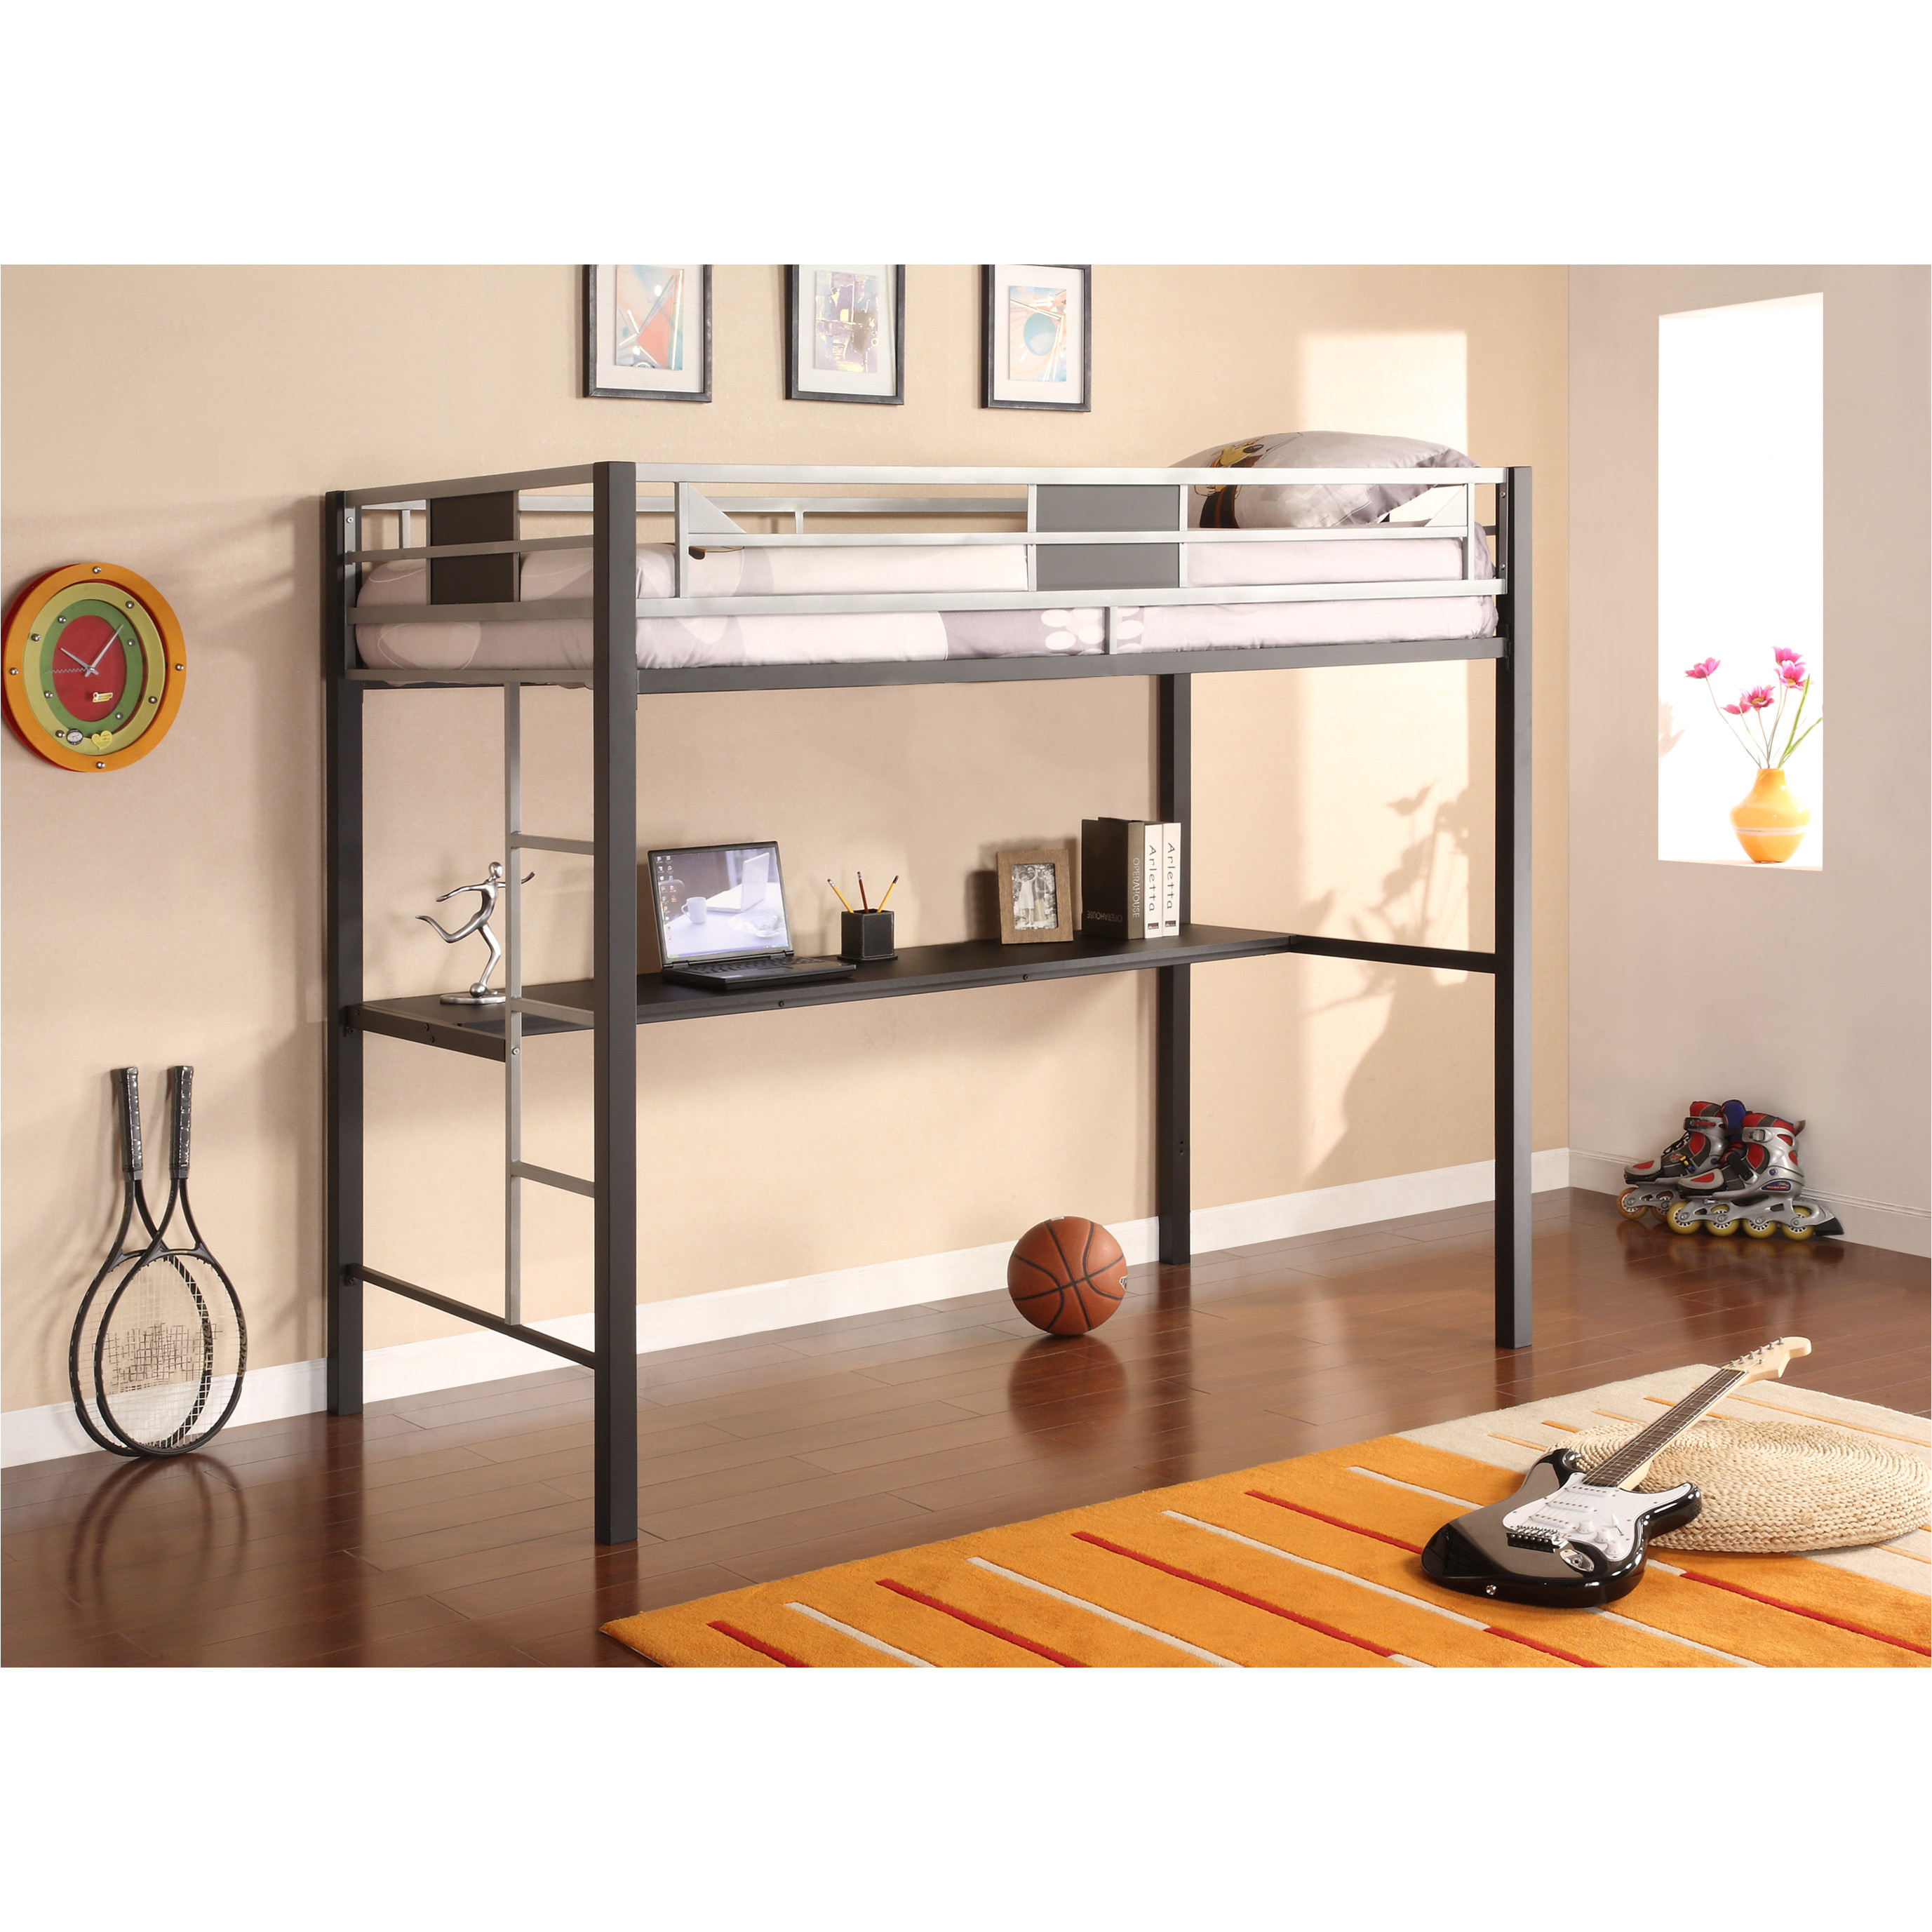 boys loft bed with desk inspirational bedroom loft with closet underneath plans desk and for bunk